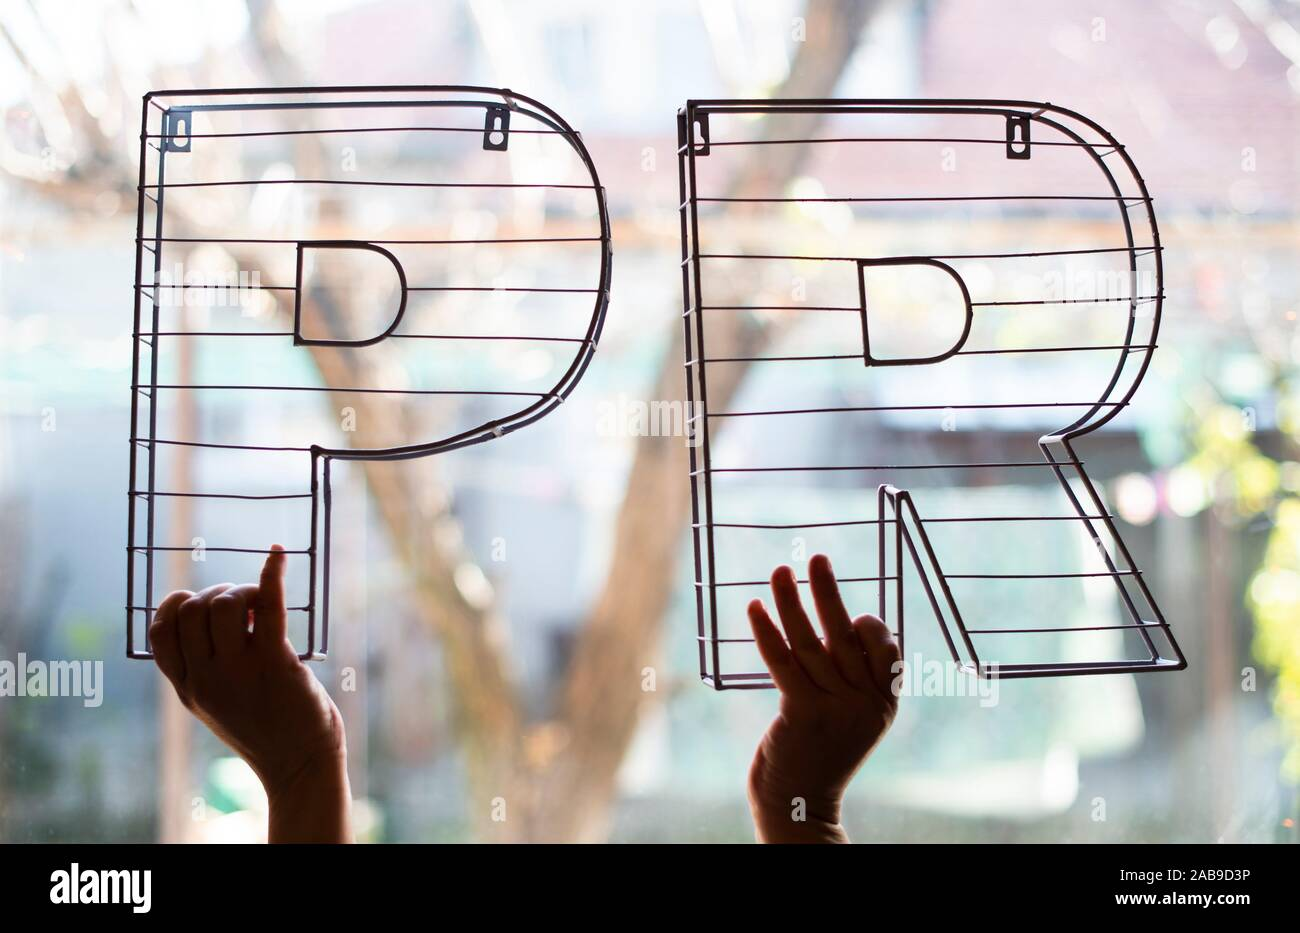 Public Relations letters in front of the window. Hands hold 3D metal letters on backlight. Marketing and business conception. Stock Photo